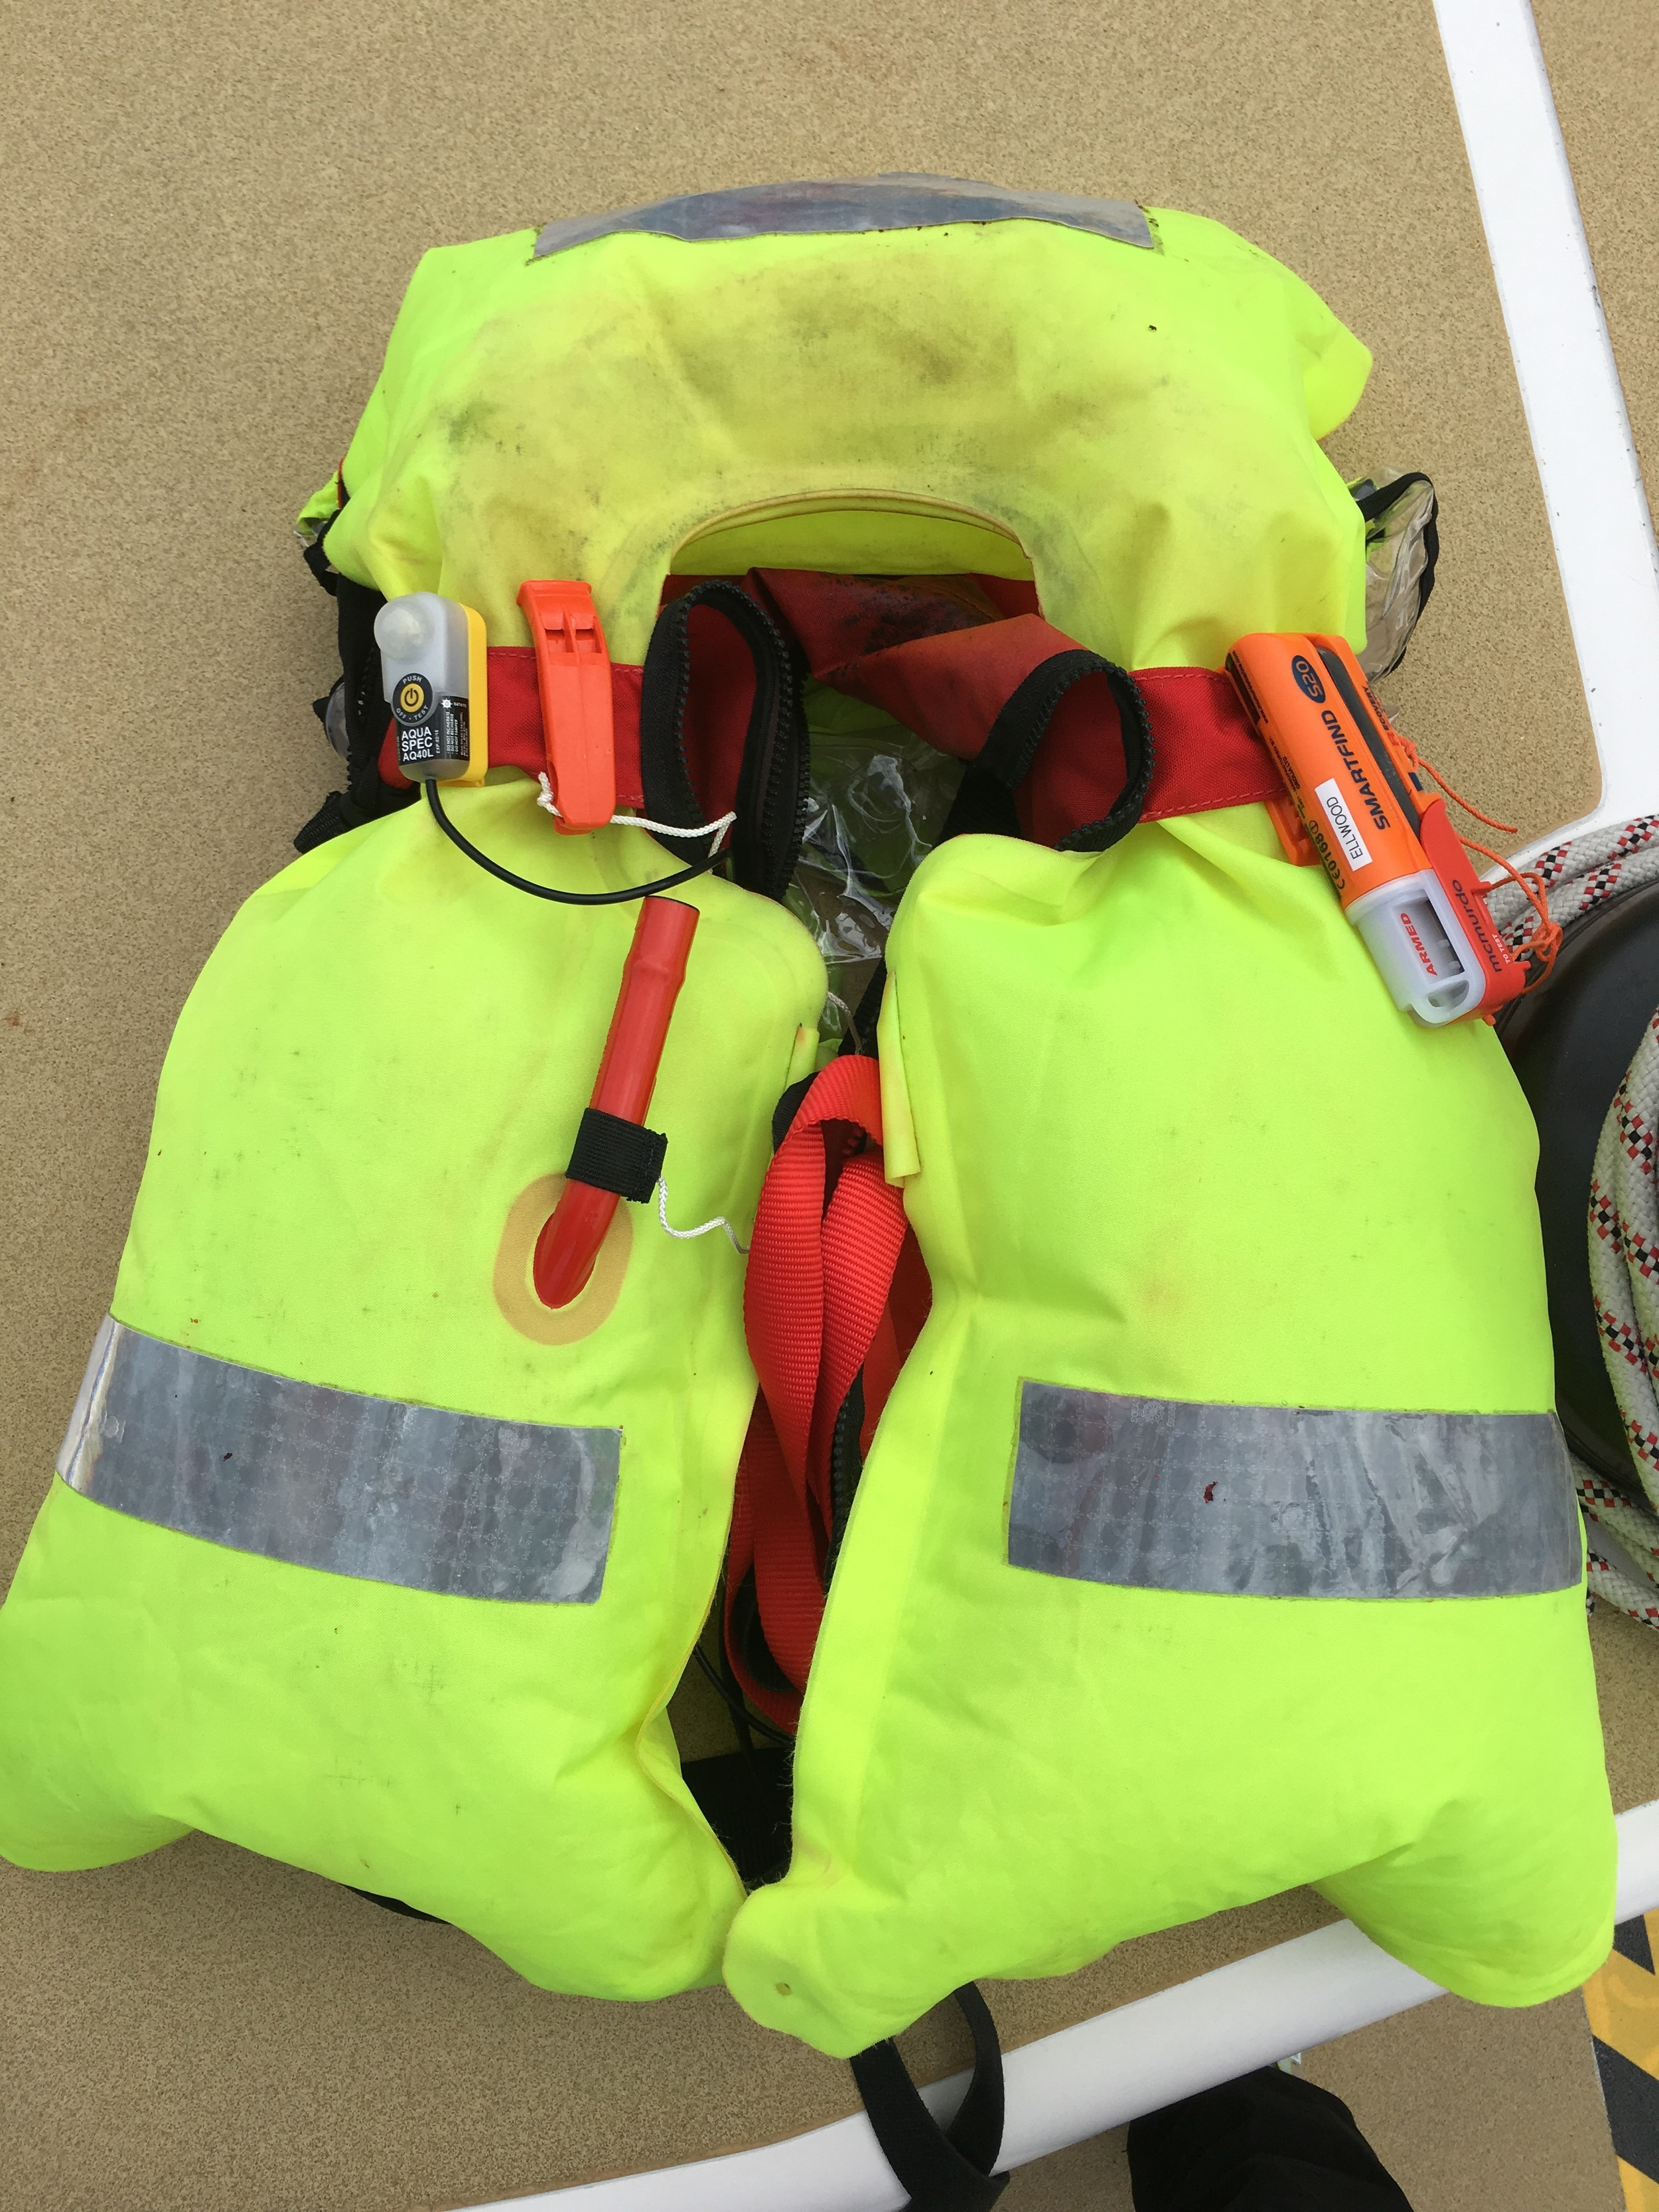 Lifejacket checked; AIS device intalled.